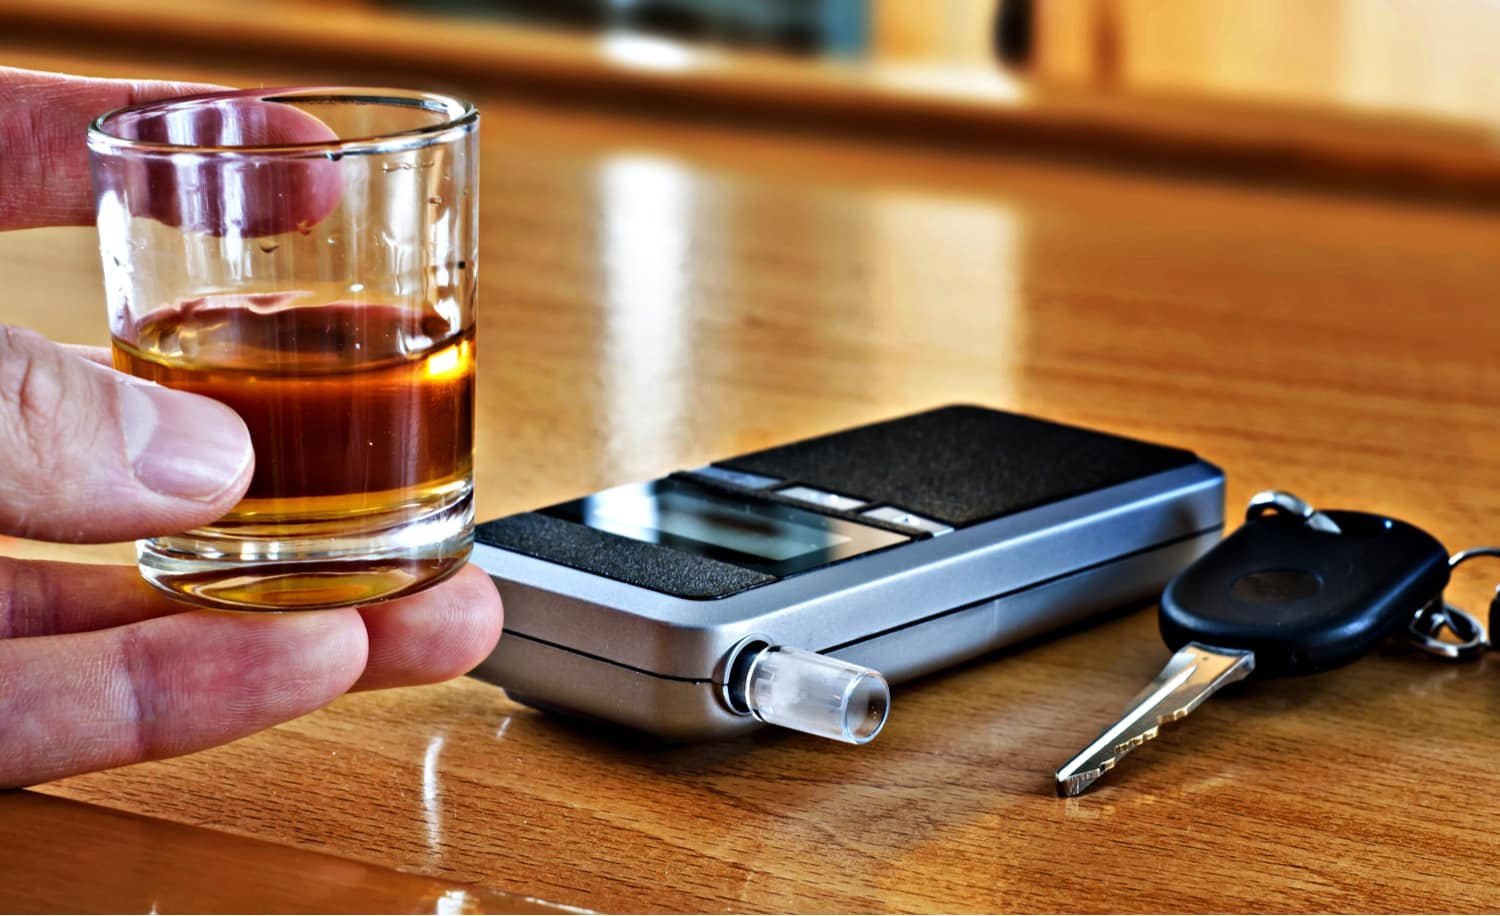 A breathalyzer next to keys on a wooden table and someone who may be over the legal alcohol limit holding a shot glass